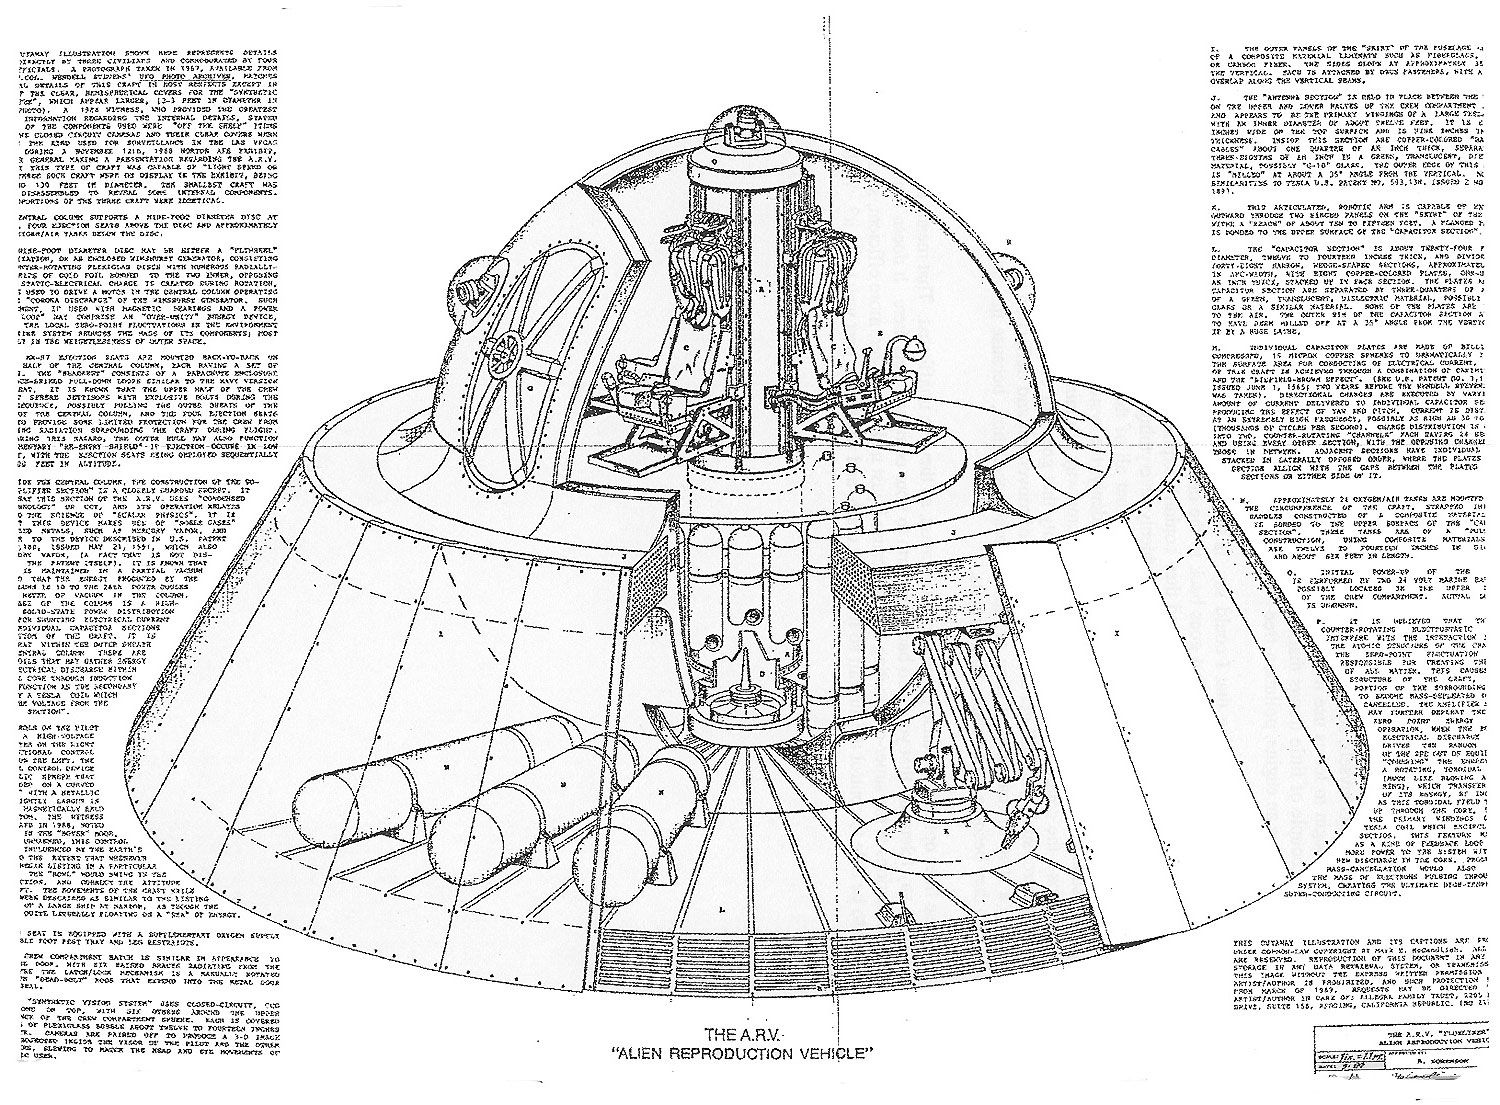 FLYING SAUCER TECH by Christopher Bounds | UFO | Pinterest ...